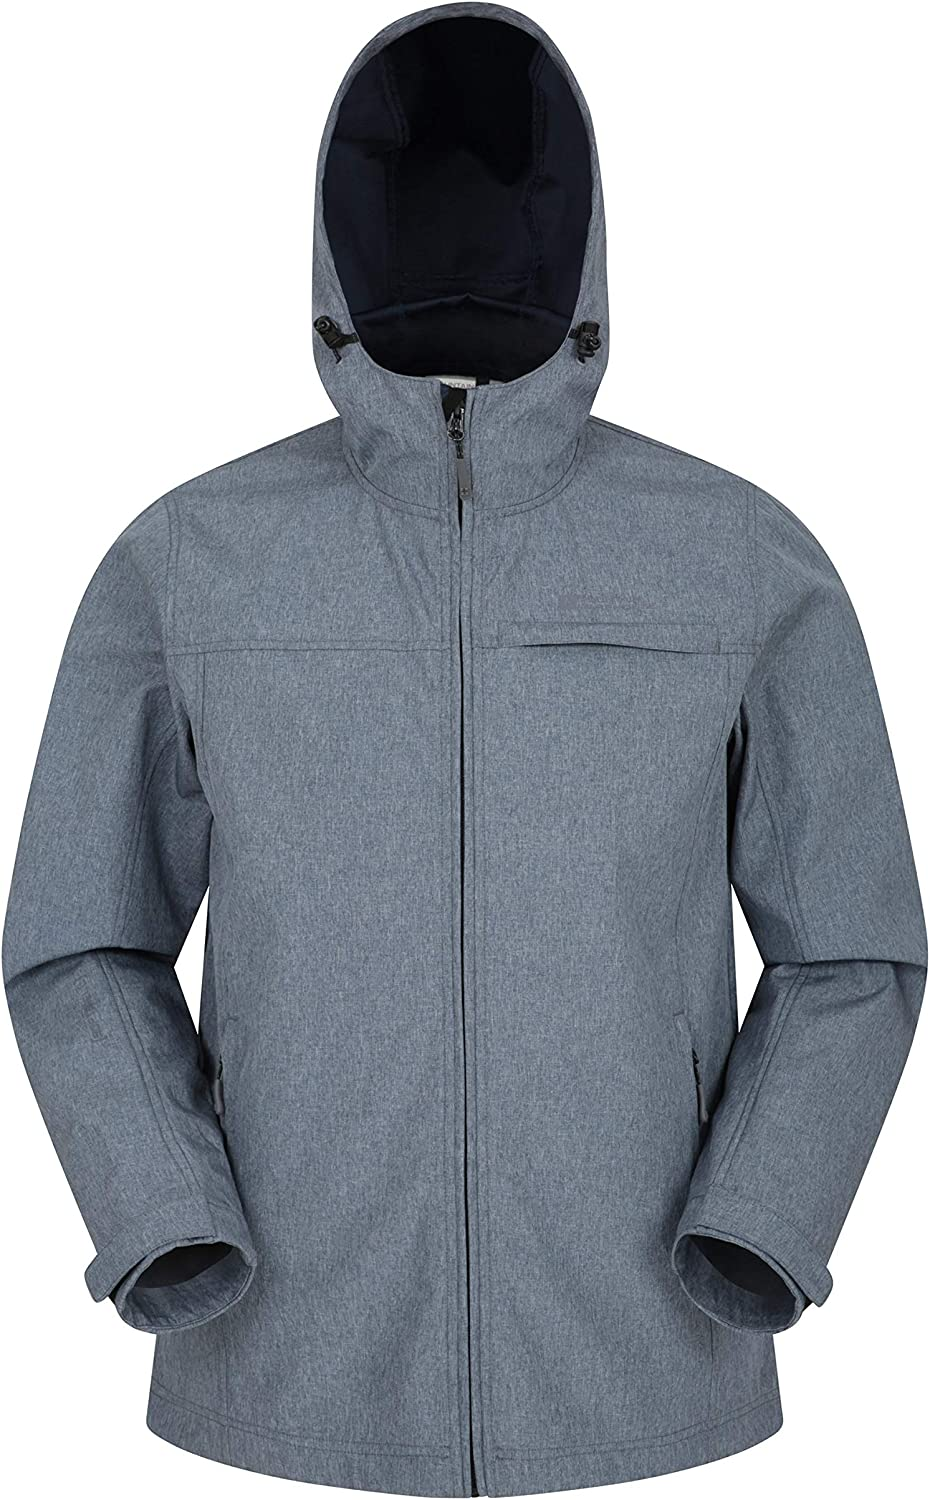 Sales of SALE items from new works Mountain Our shop most popular Warehouse Mens Textured Softshell - Water Resist Jacket